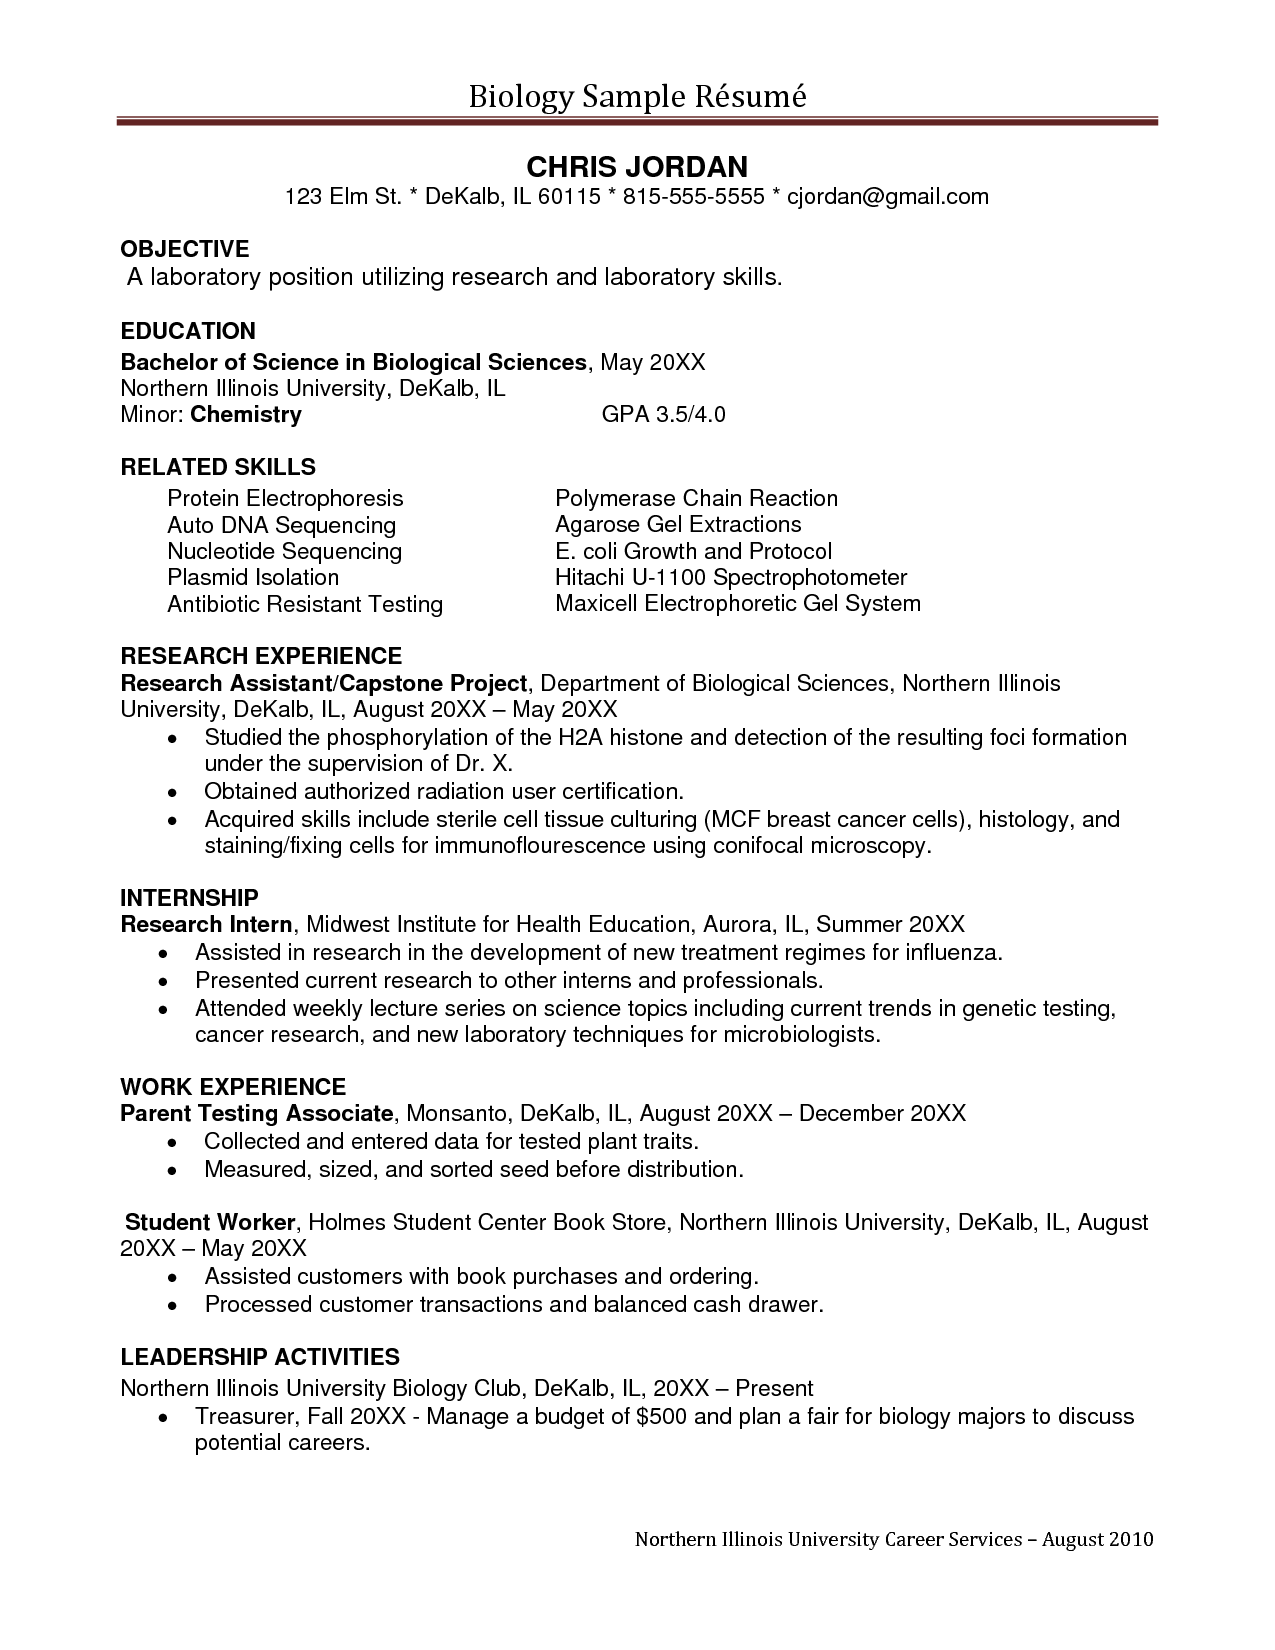 research assistant resume sample objective research assistant resume sample objective admin assistant objective resume sample - Resume How To Write Objective